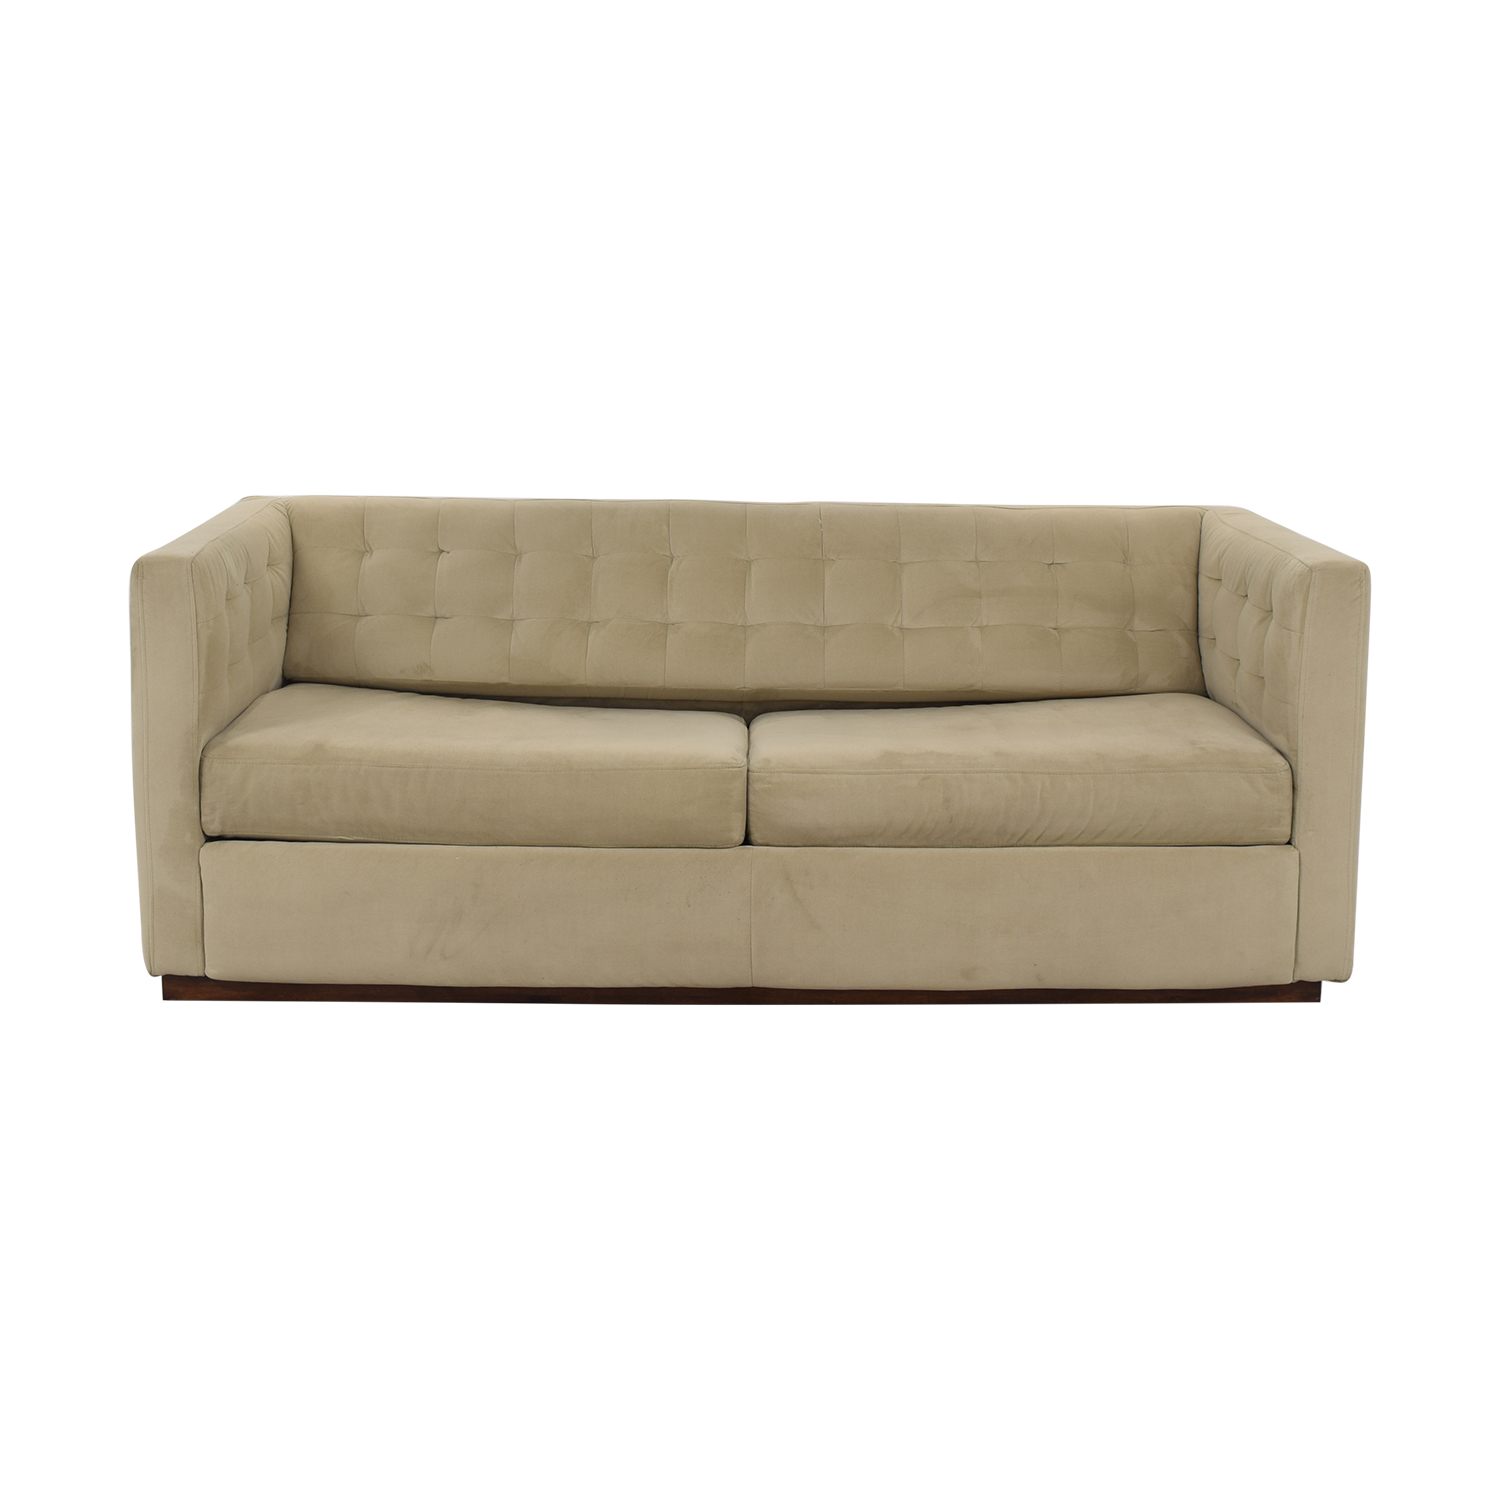 West Elm Rochester Deluxe Queen Sleeper Sofa / Sofa Beds